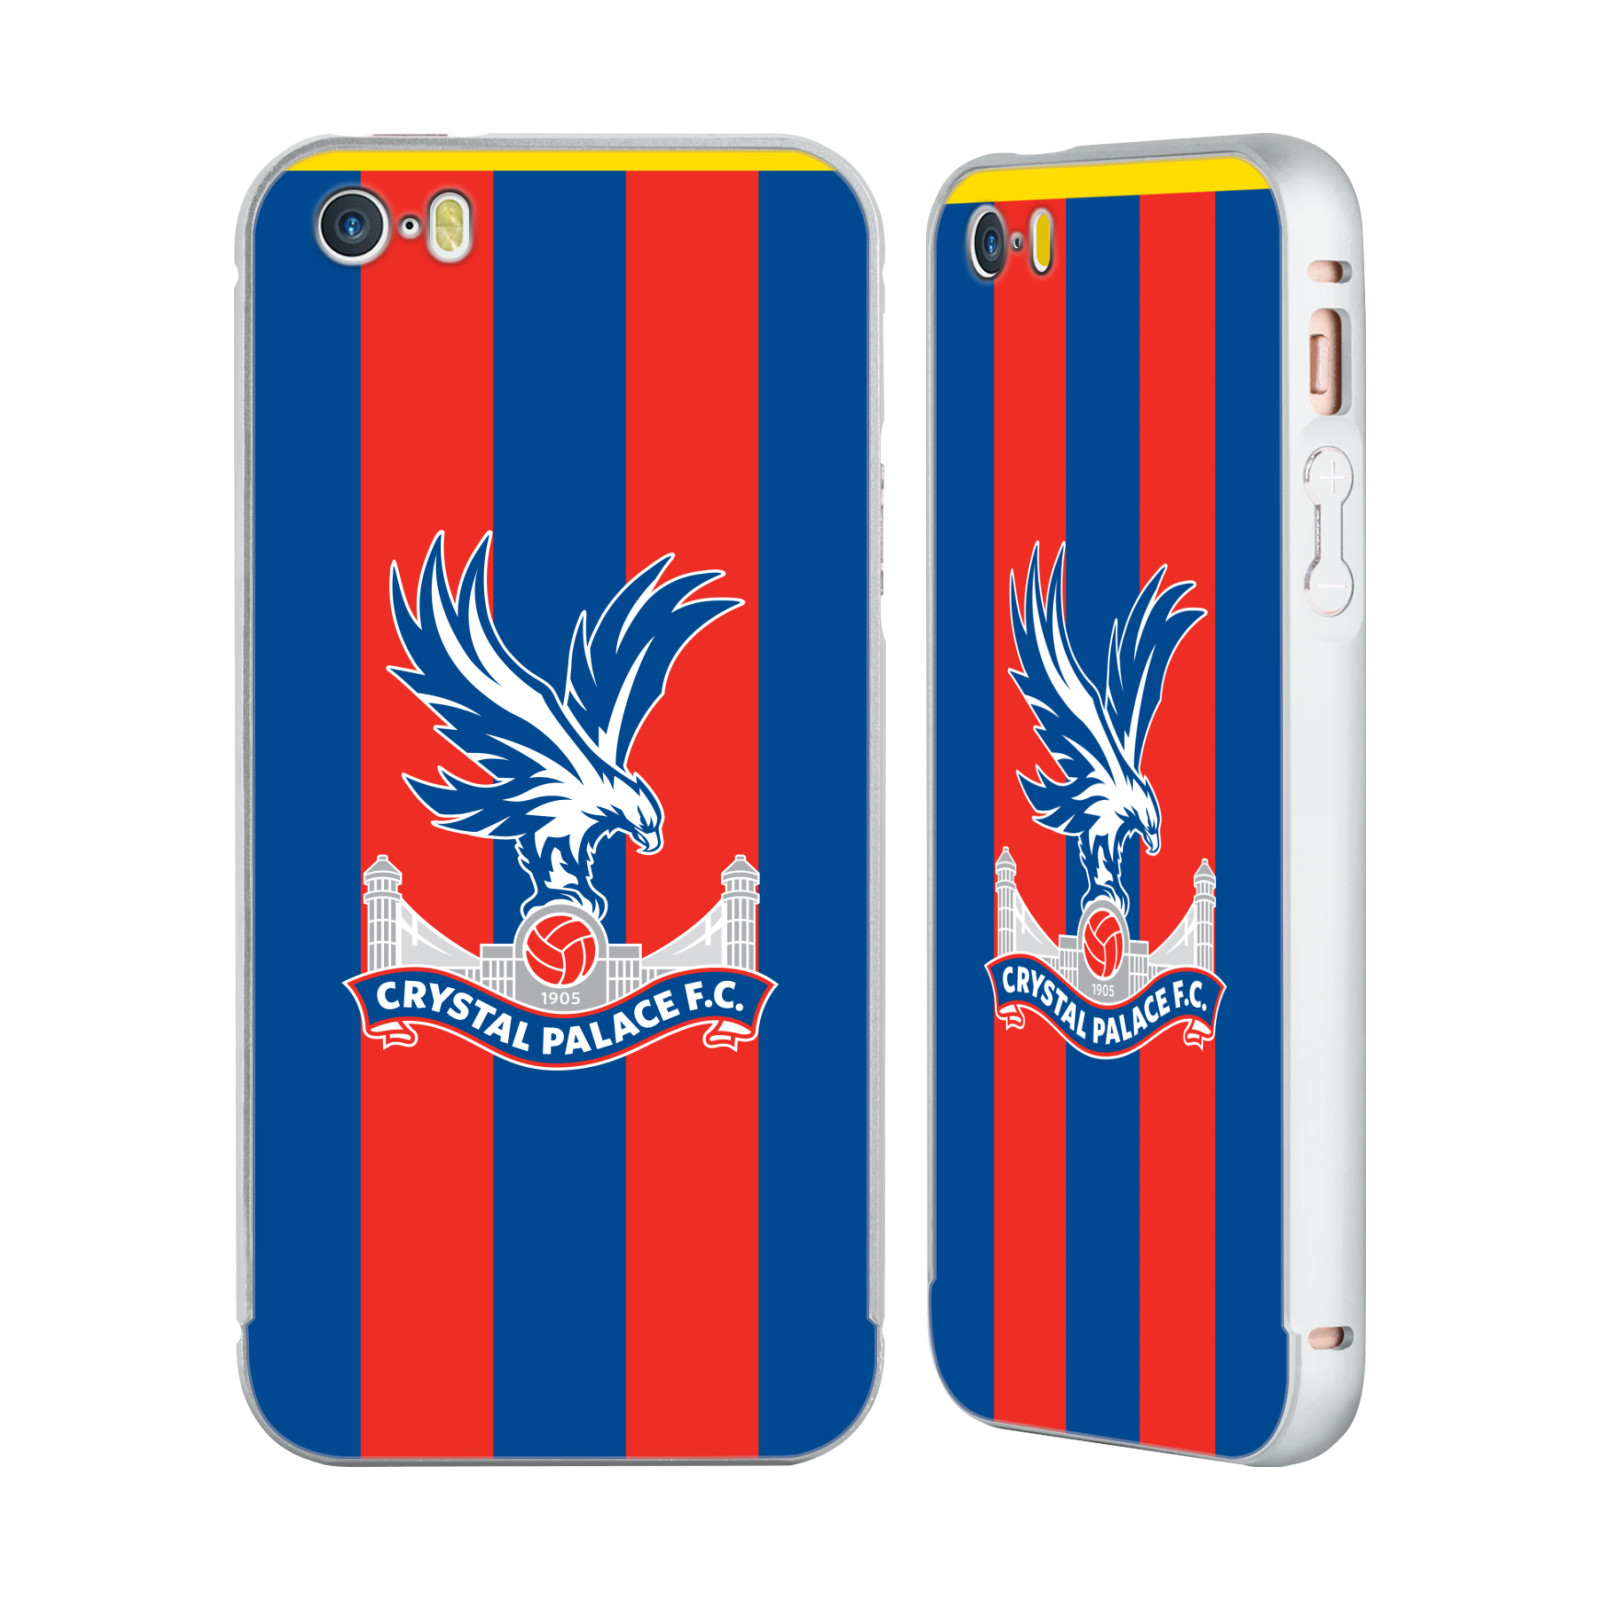 CRYSTAL-PALACE-FC-2017-18-PLAYERS-KIT-SILVER-SLIDER-CASE-FOR-APPLE-iPHONE-PHONES